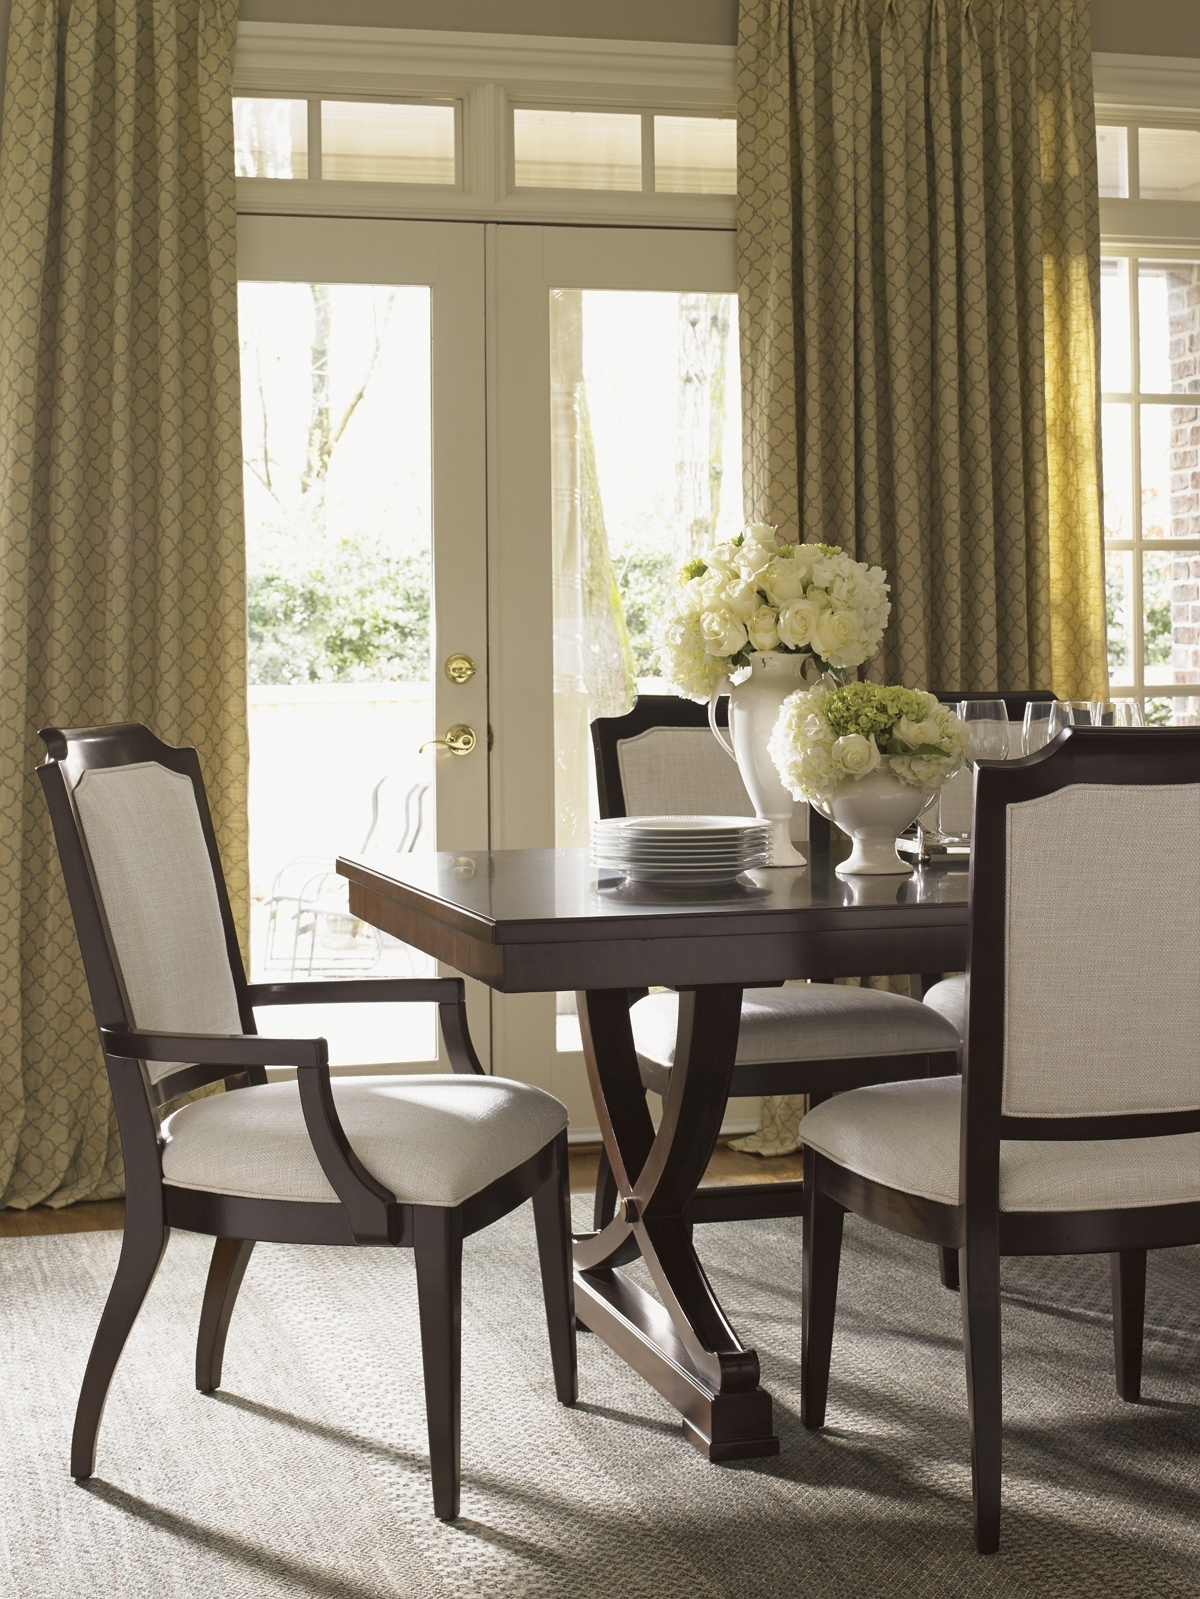 Kensington Place Westwood Rectangular Dining Table | Lexington Home Pertaining To 2017 Candice Ii Extension Rectangle Dining Tables (View 15 of 20)